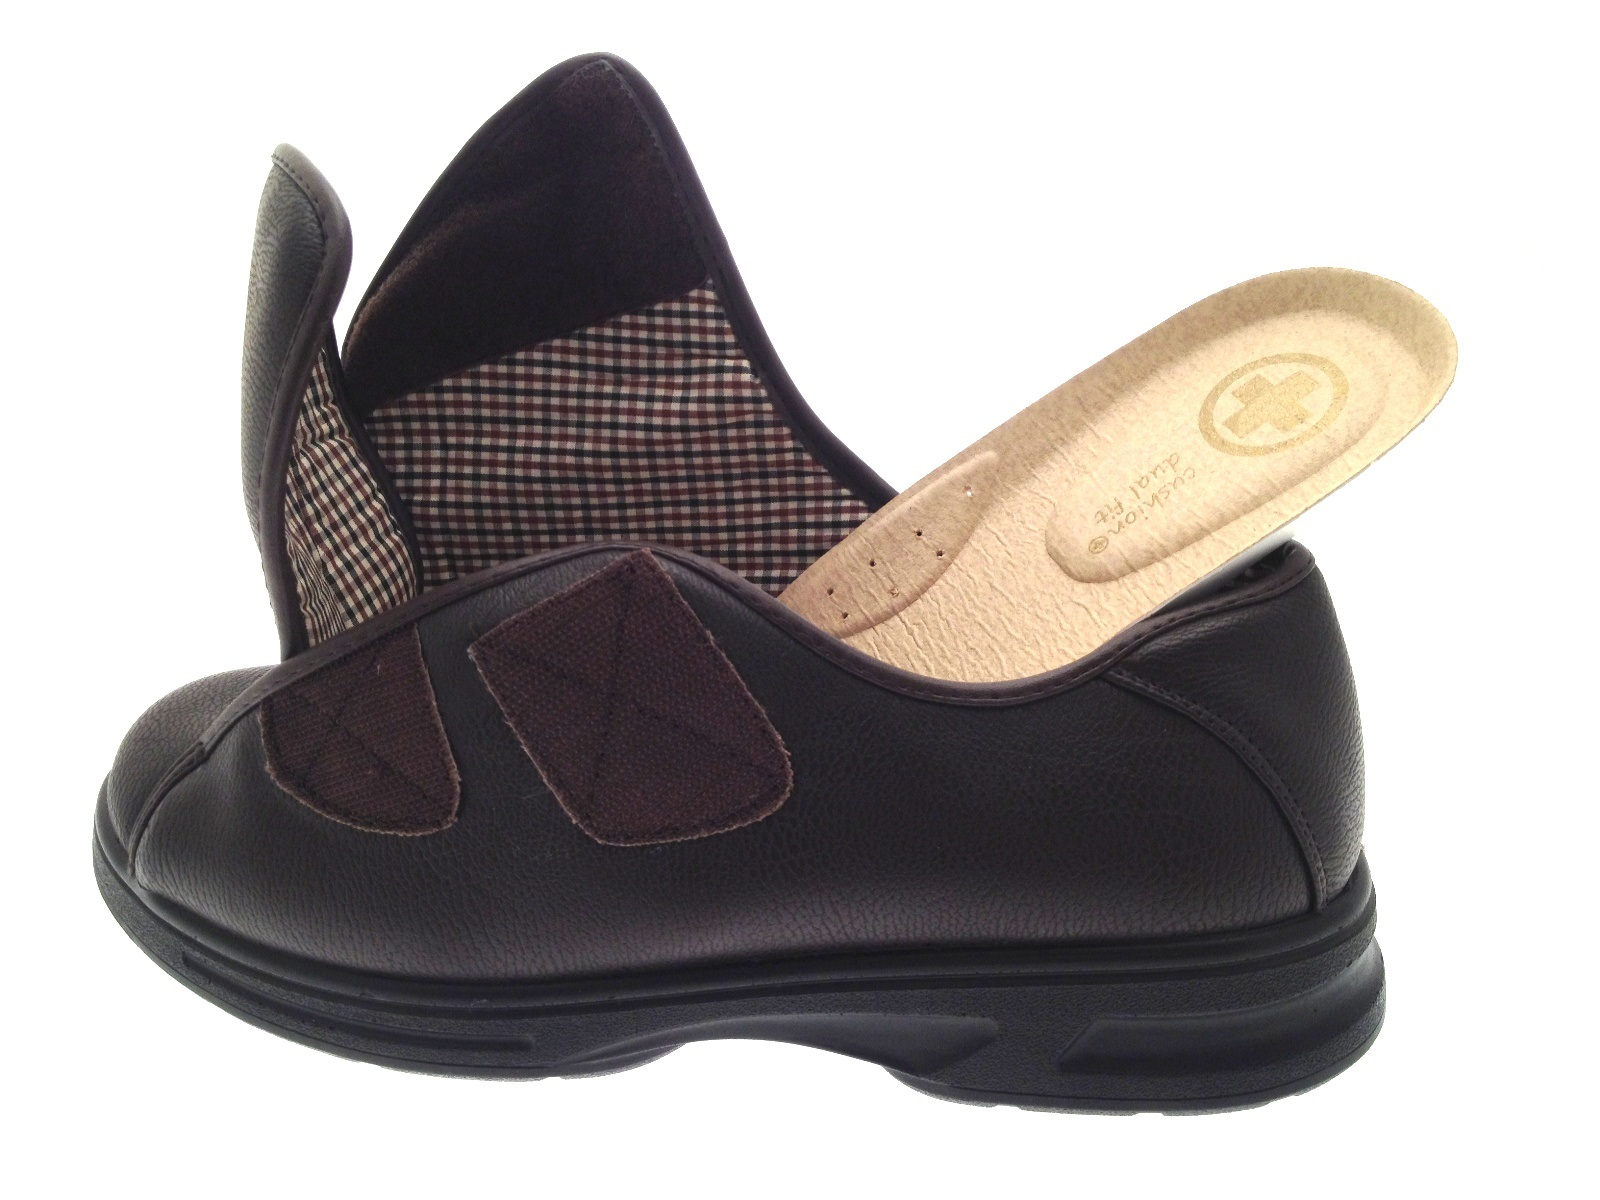 Mens Extra Wide Fit Shoes Ebay Uk